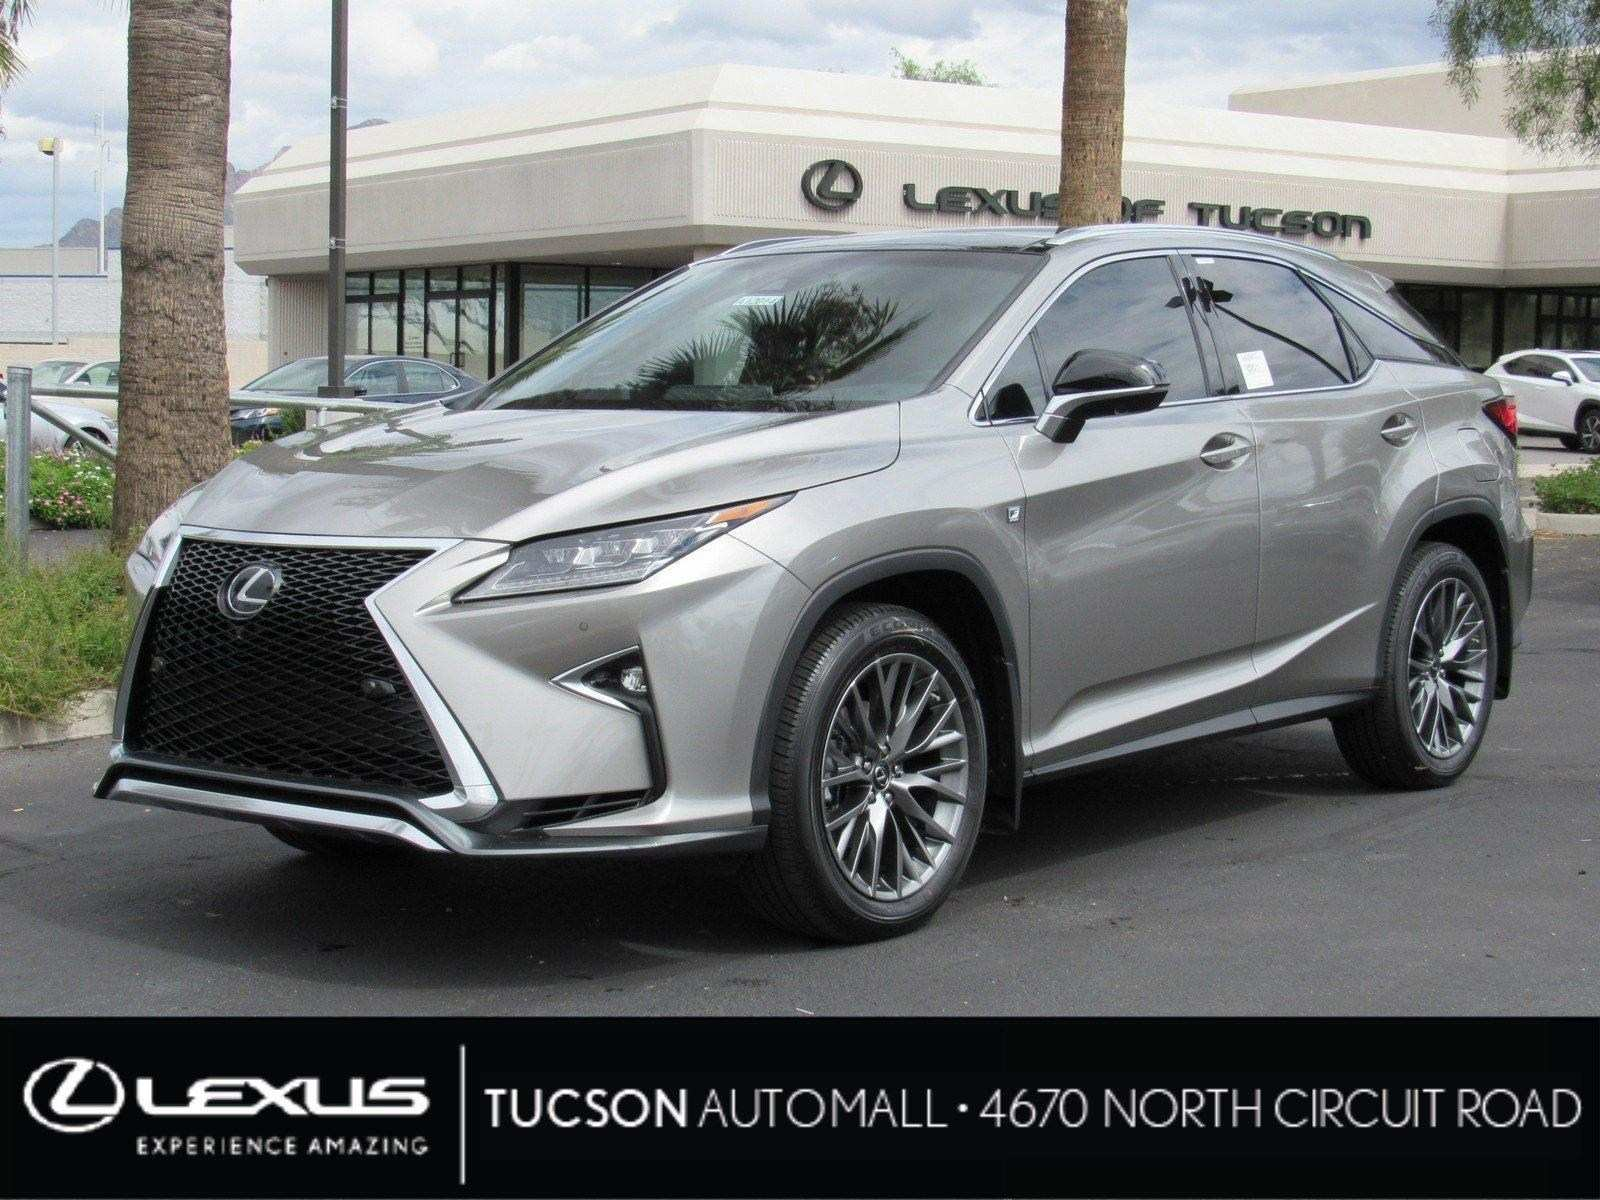 83 Gallery of The 2019 Lexus Rx 350 Release Date Price And Release Date Engine by The 2019 Lexus Rx 350 Release Date Price And Release Date